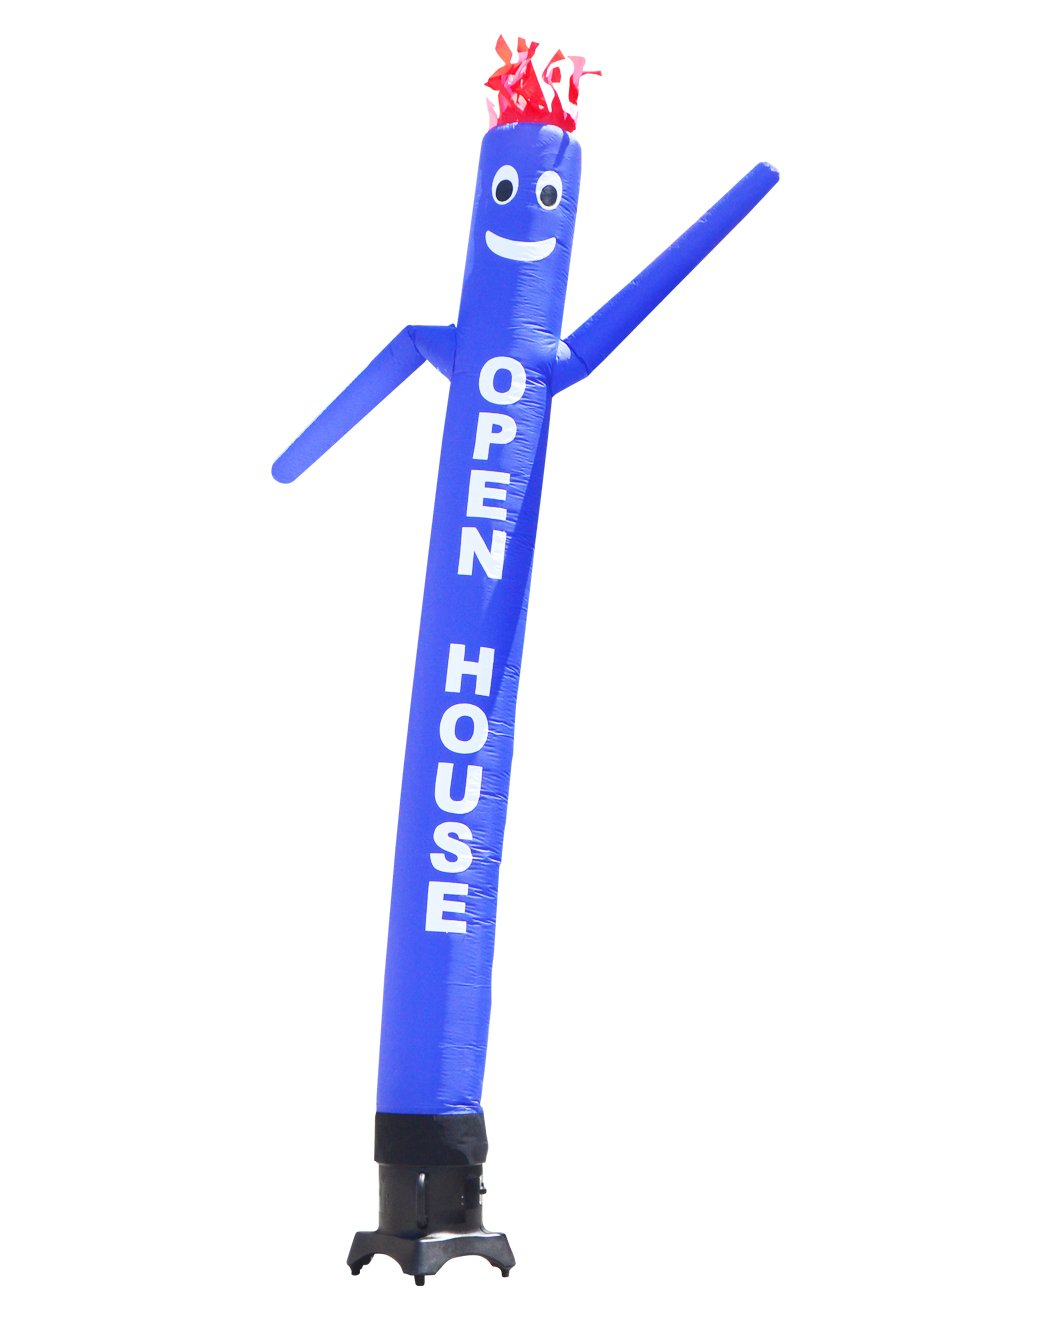 LookOurWay ''Open House Air Dancers Inflatable Tube Man Attachment, 10-Feet, Blue (No Blower) by LookOurWay